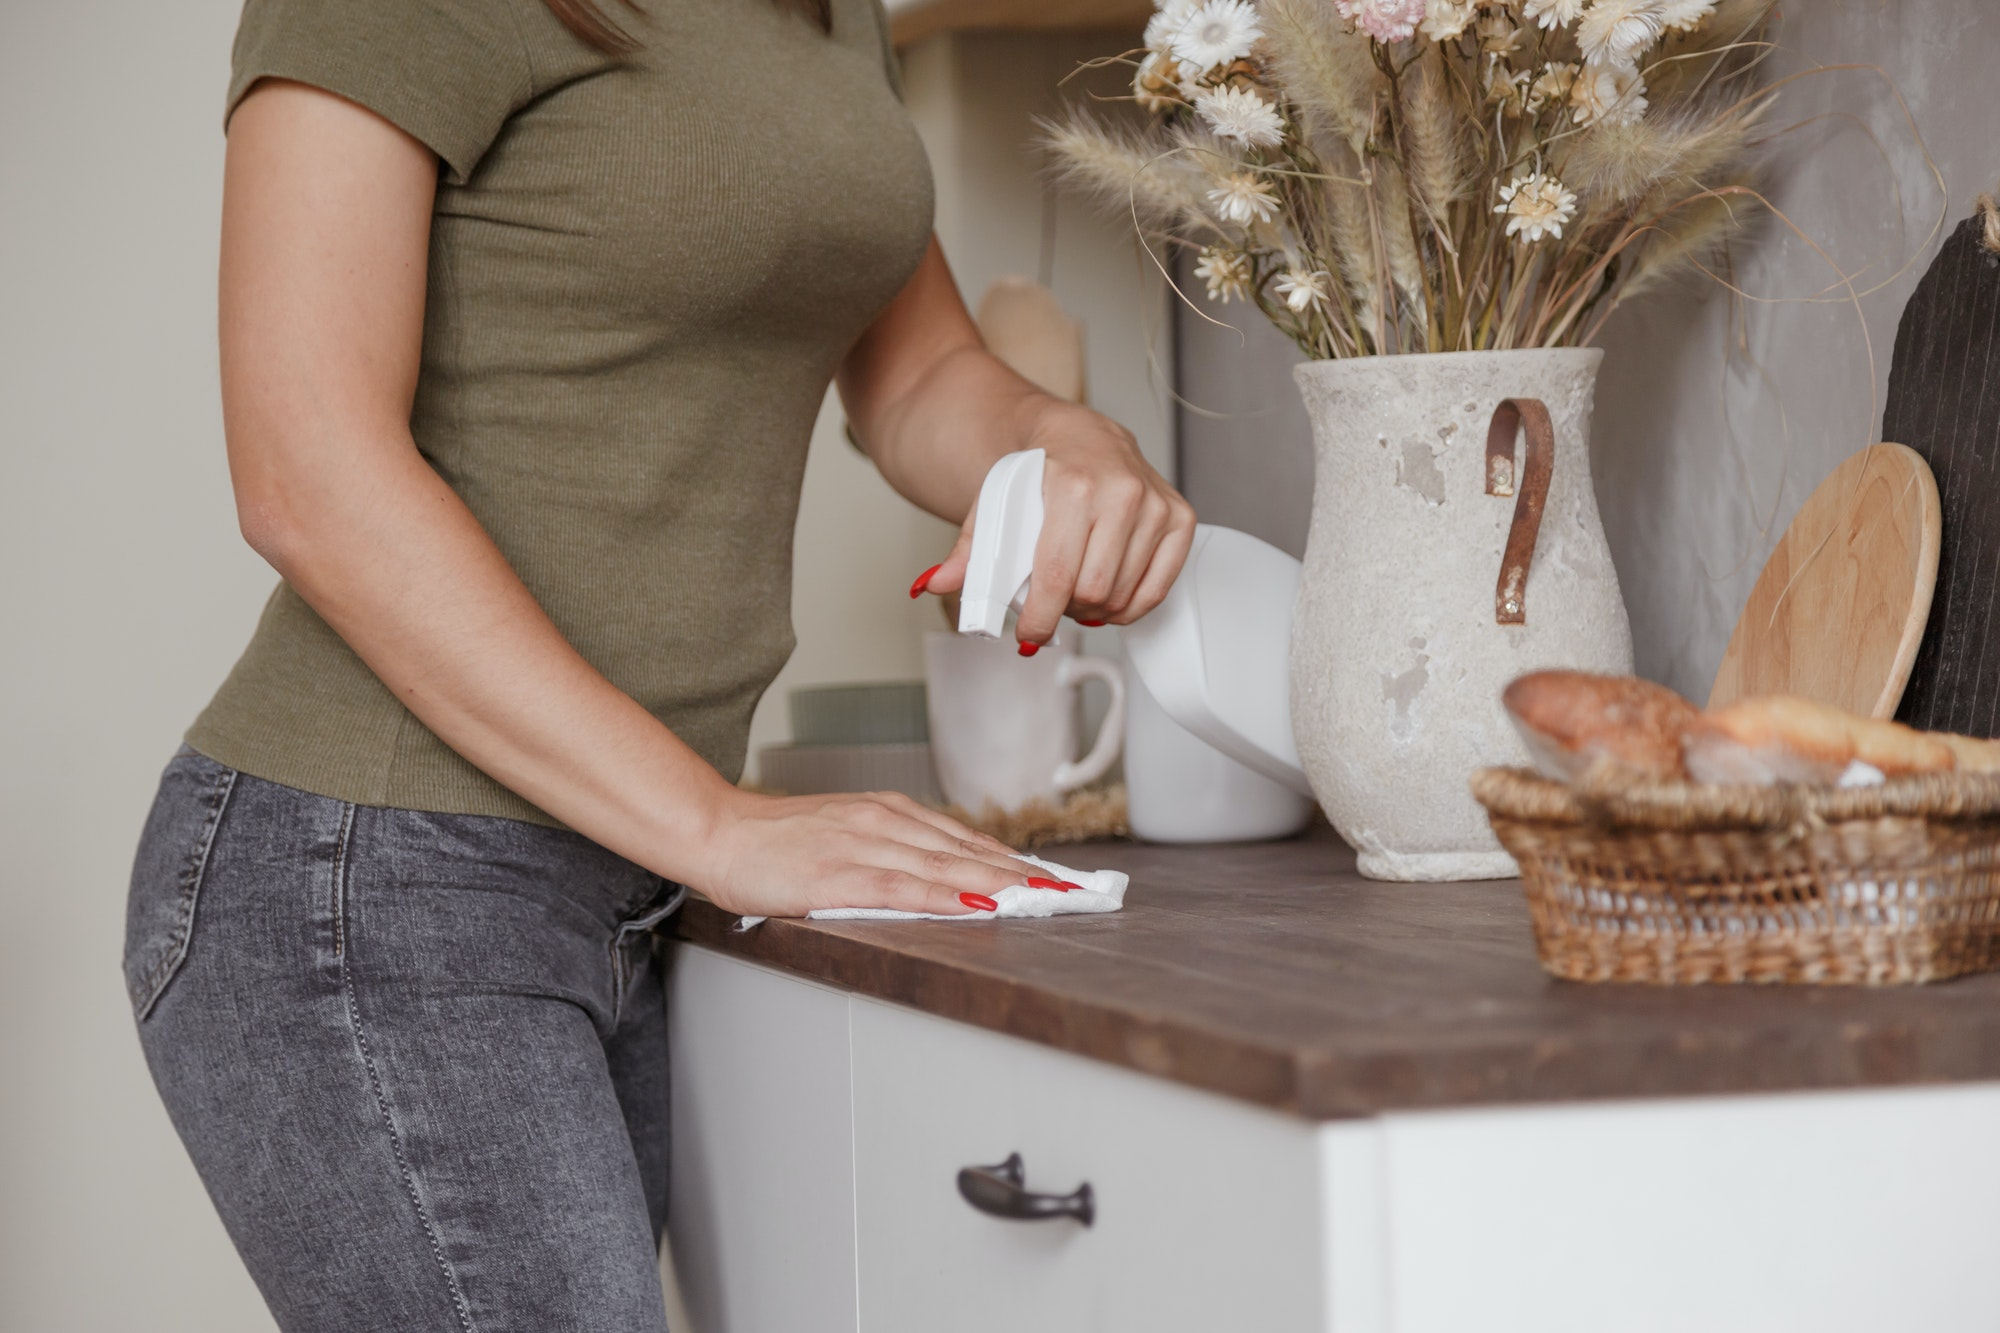 Young woman without gloves cleaning table with spray rag in kitchen